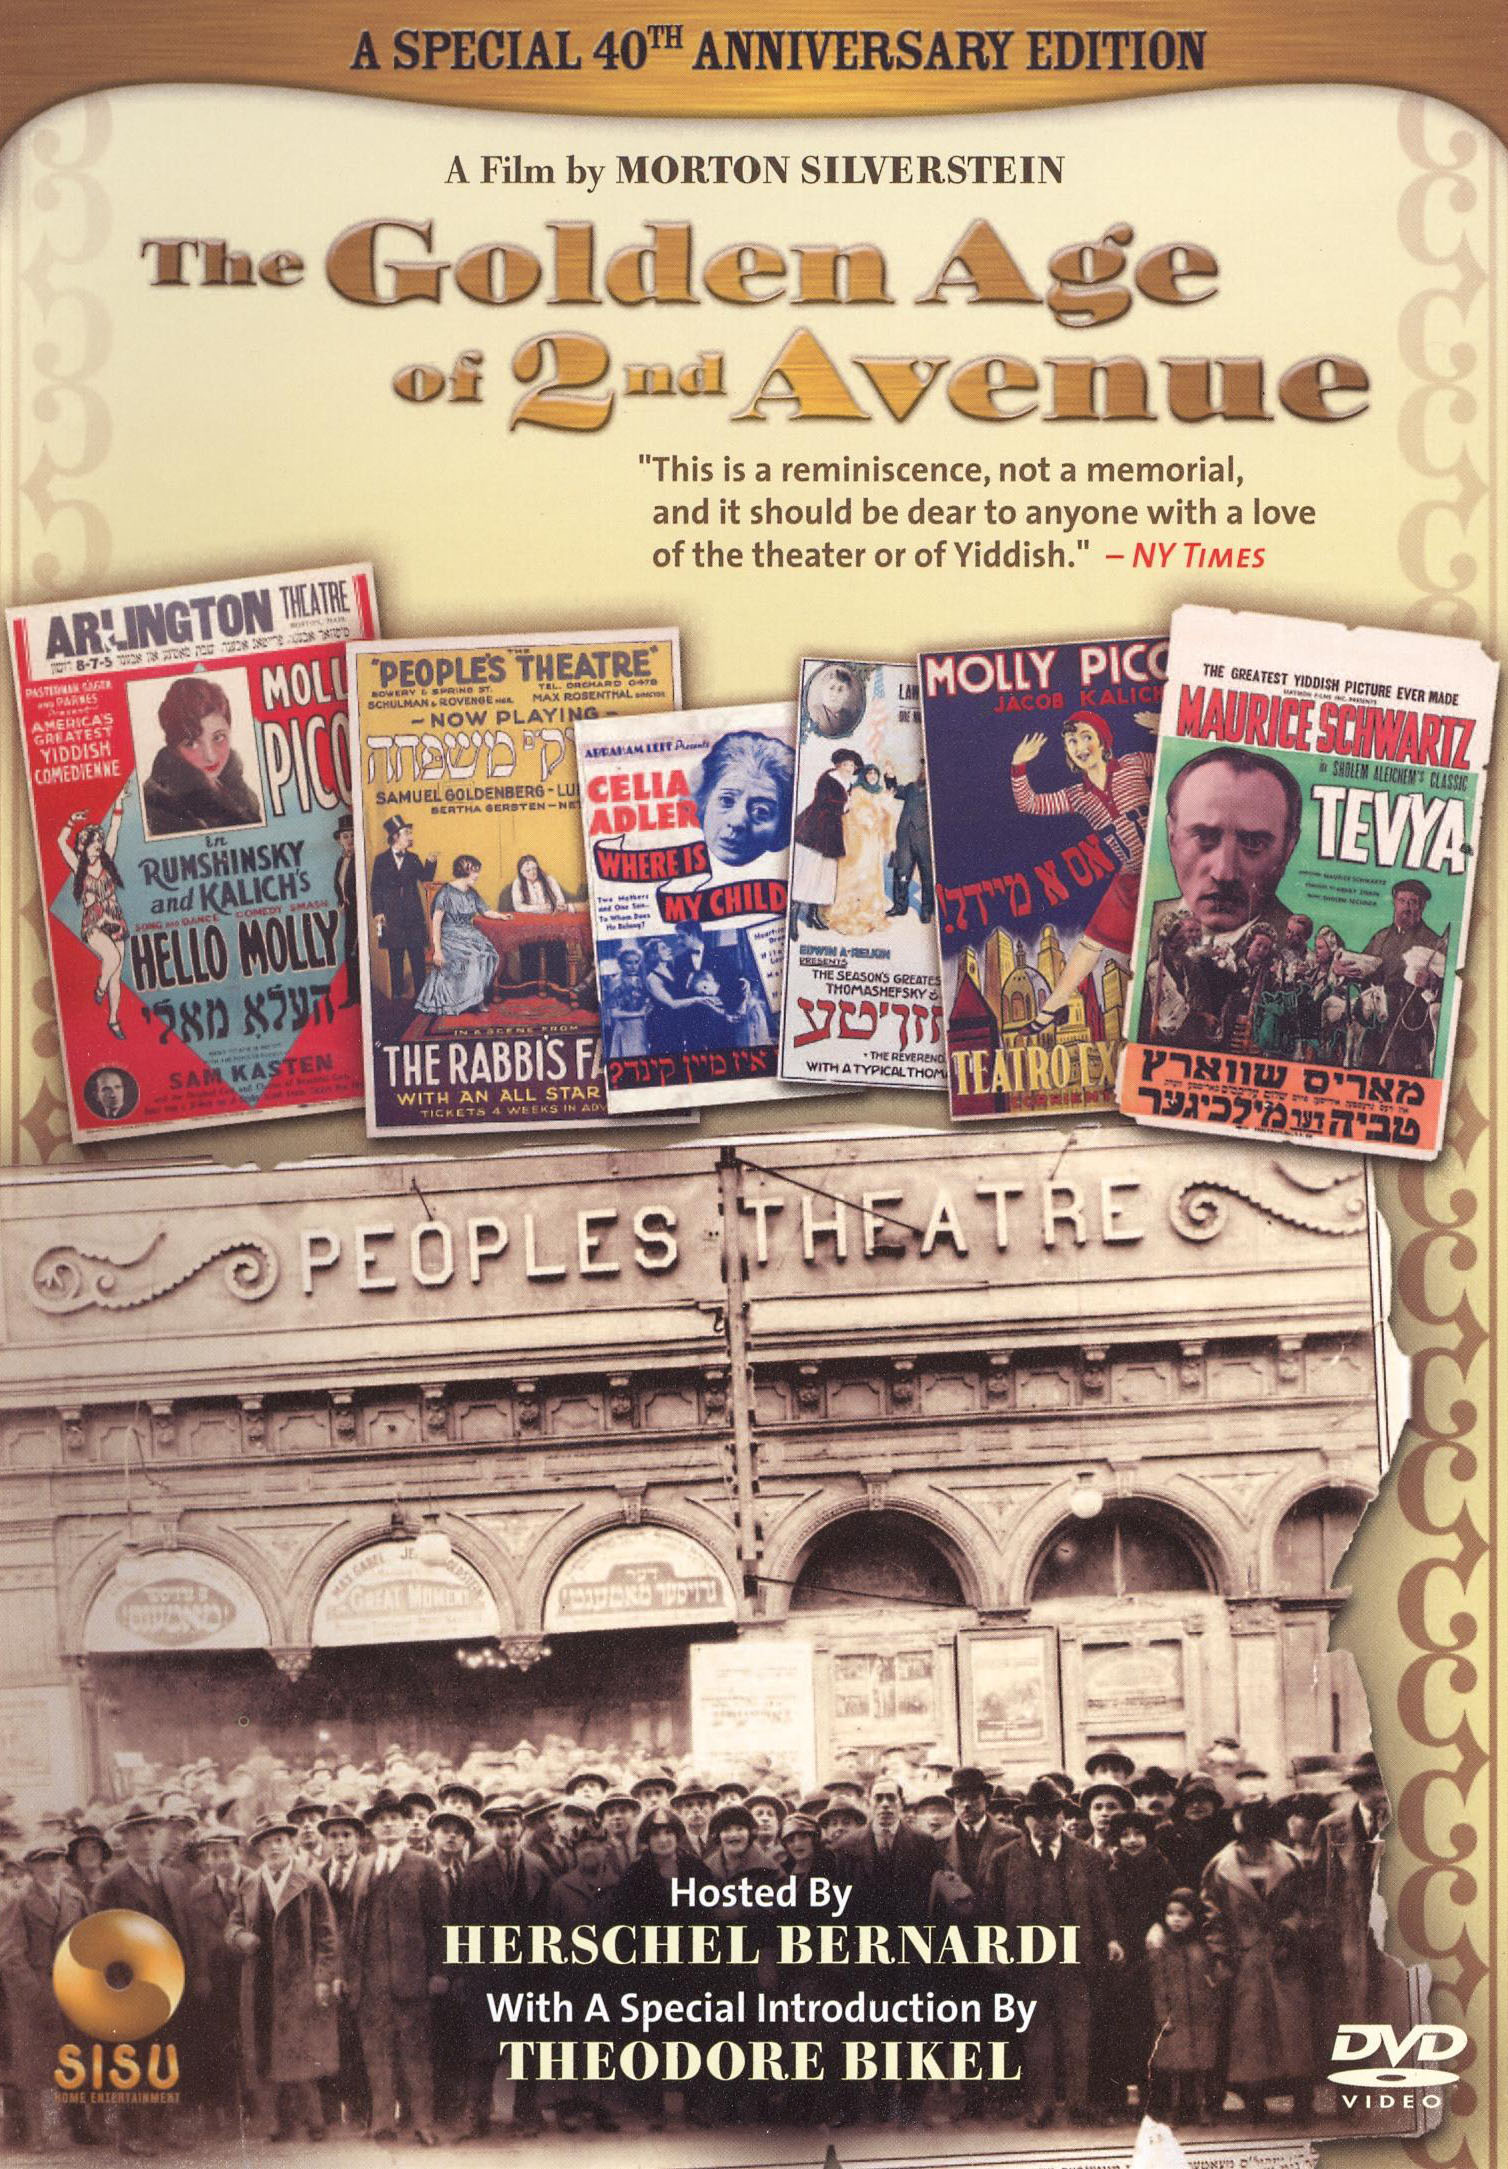 The Golden Age of 2nd Avenue